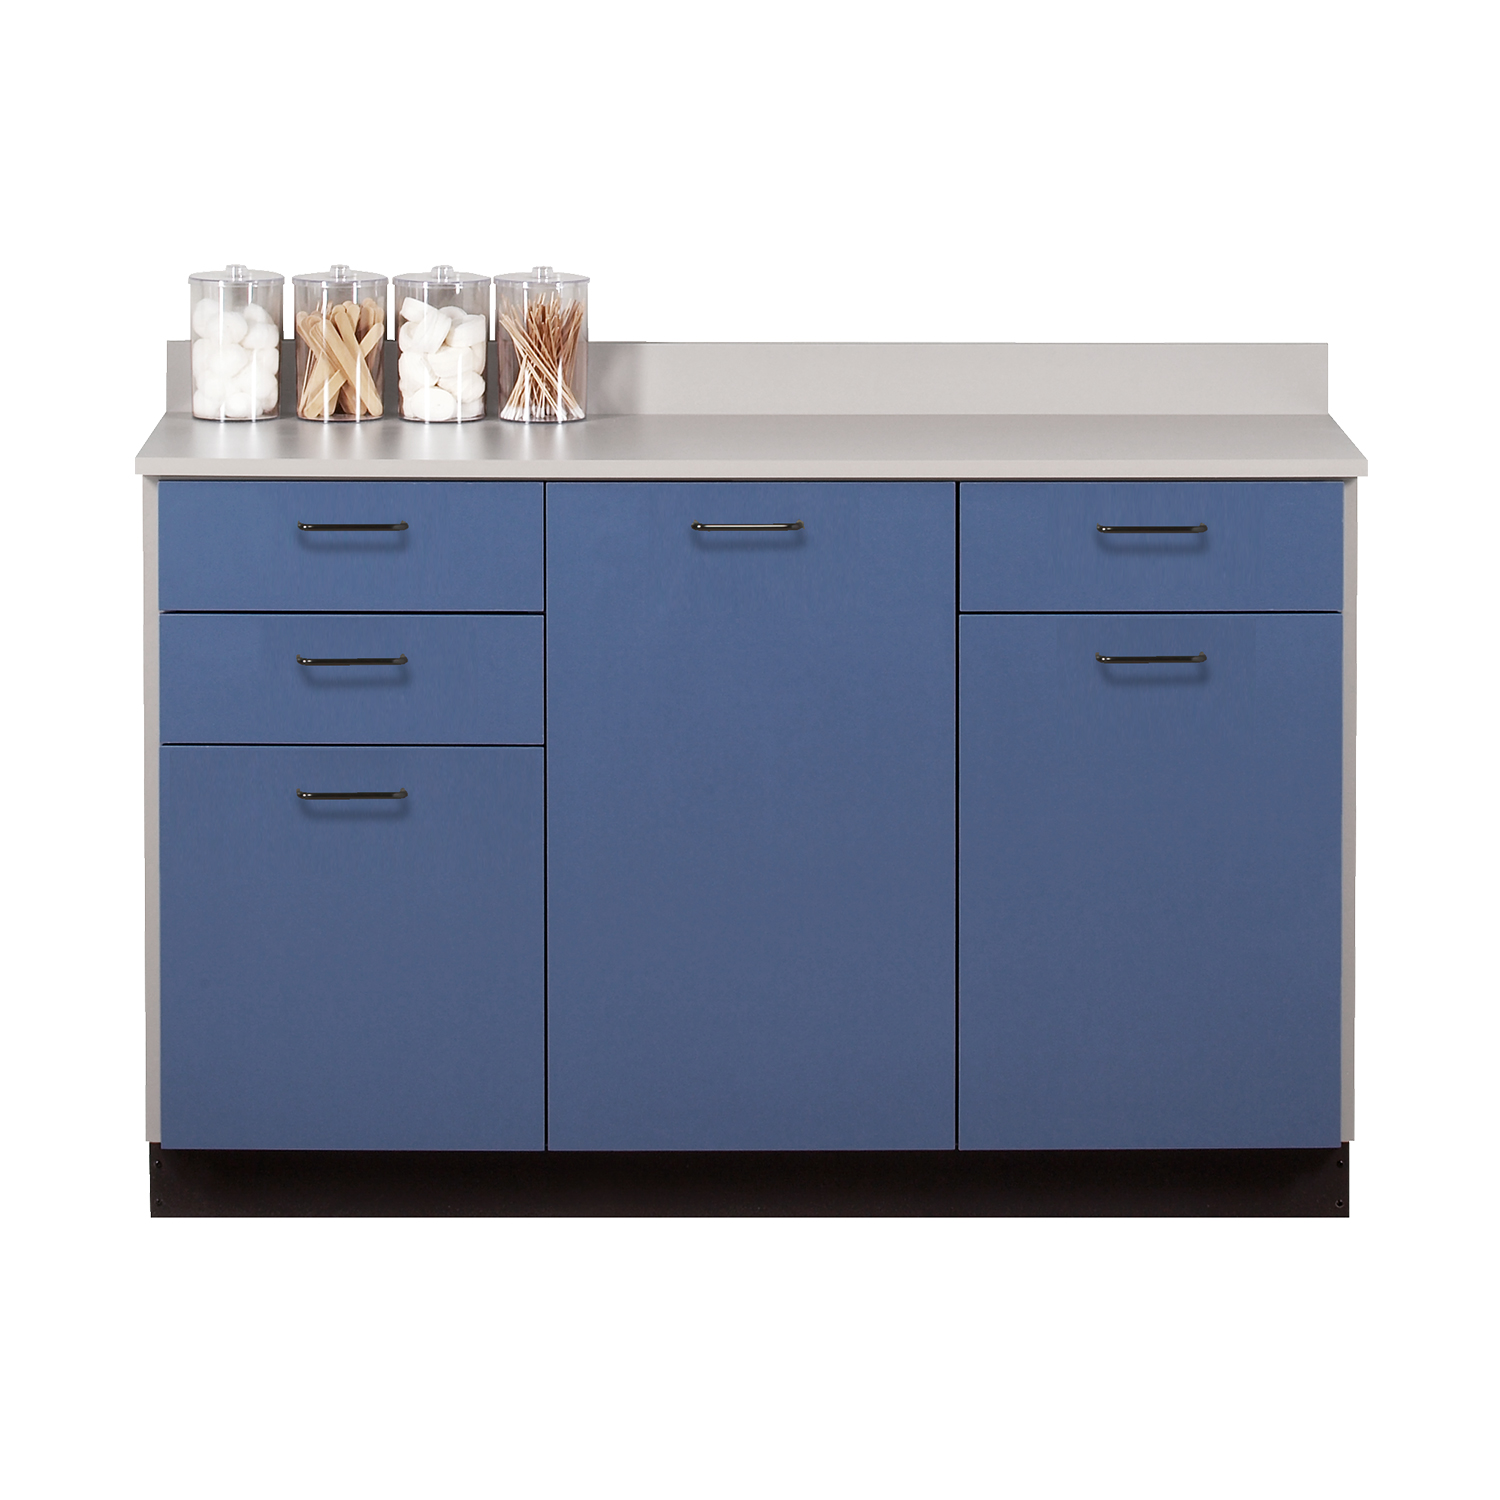 Clinton Base Cabinet with 3 Doors and 3 Drawers